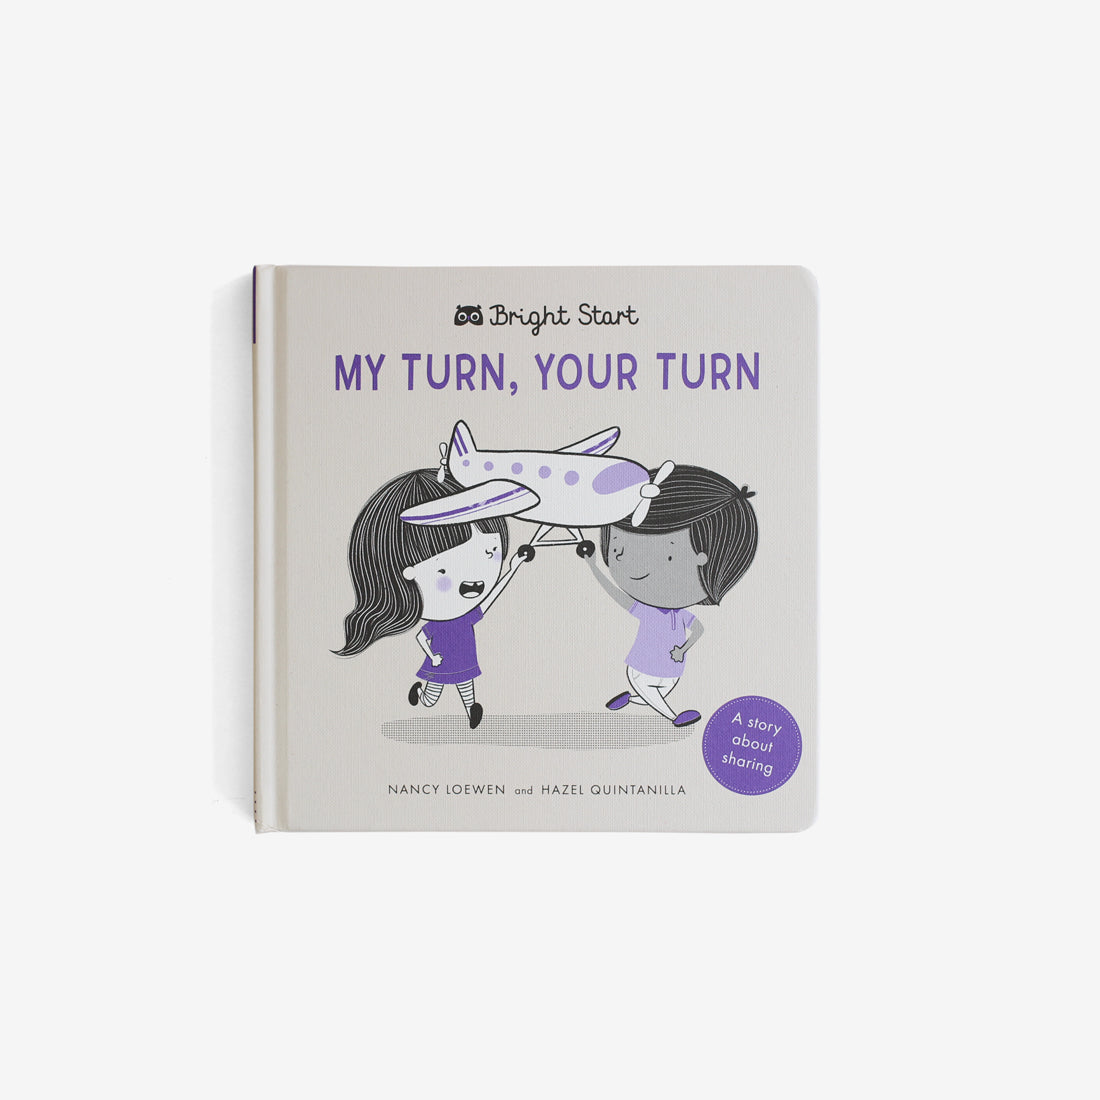 Bright Start: My Turn, Your Turn